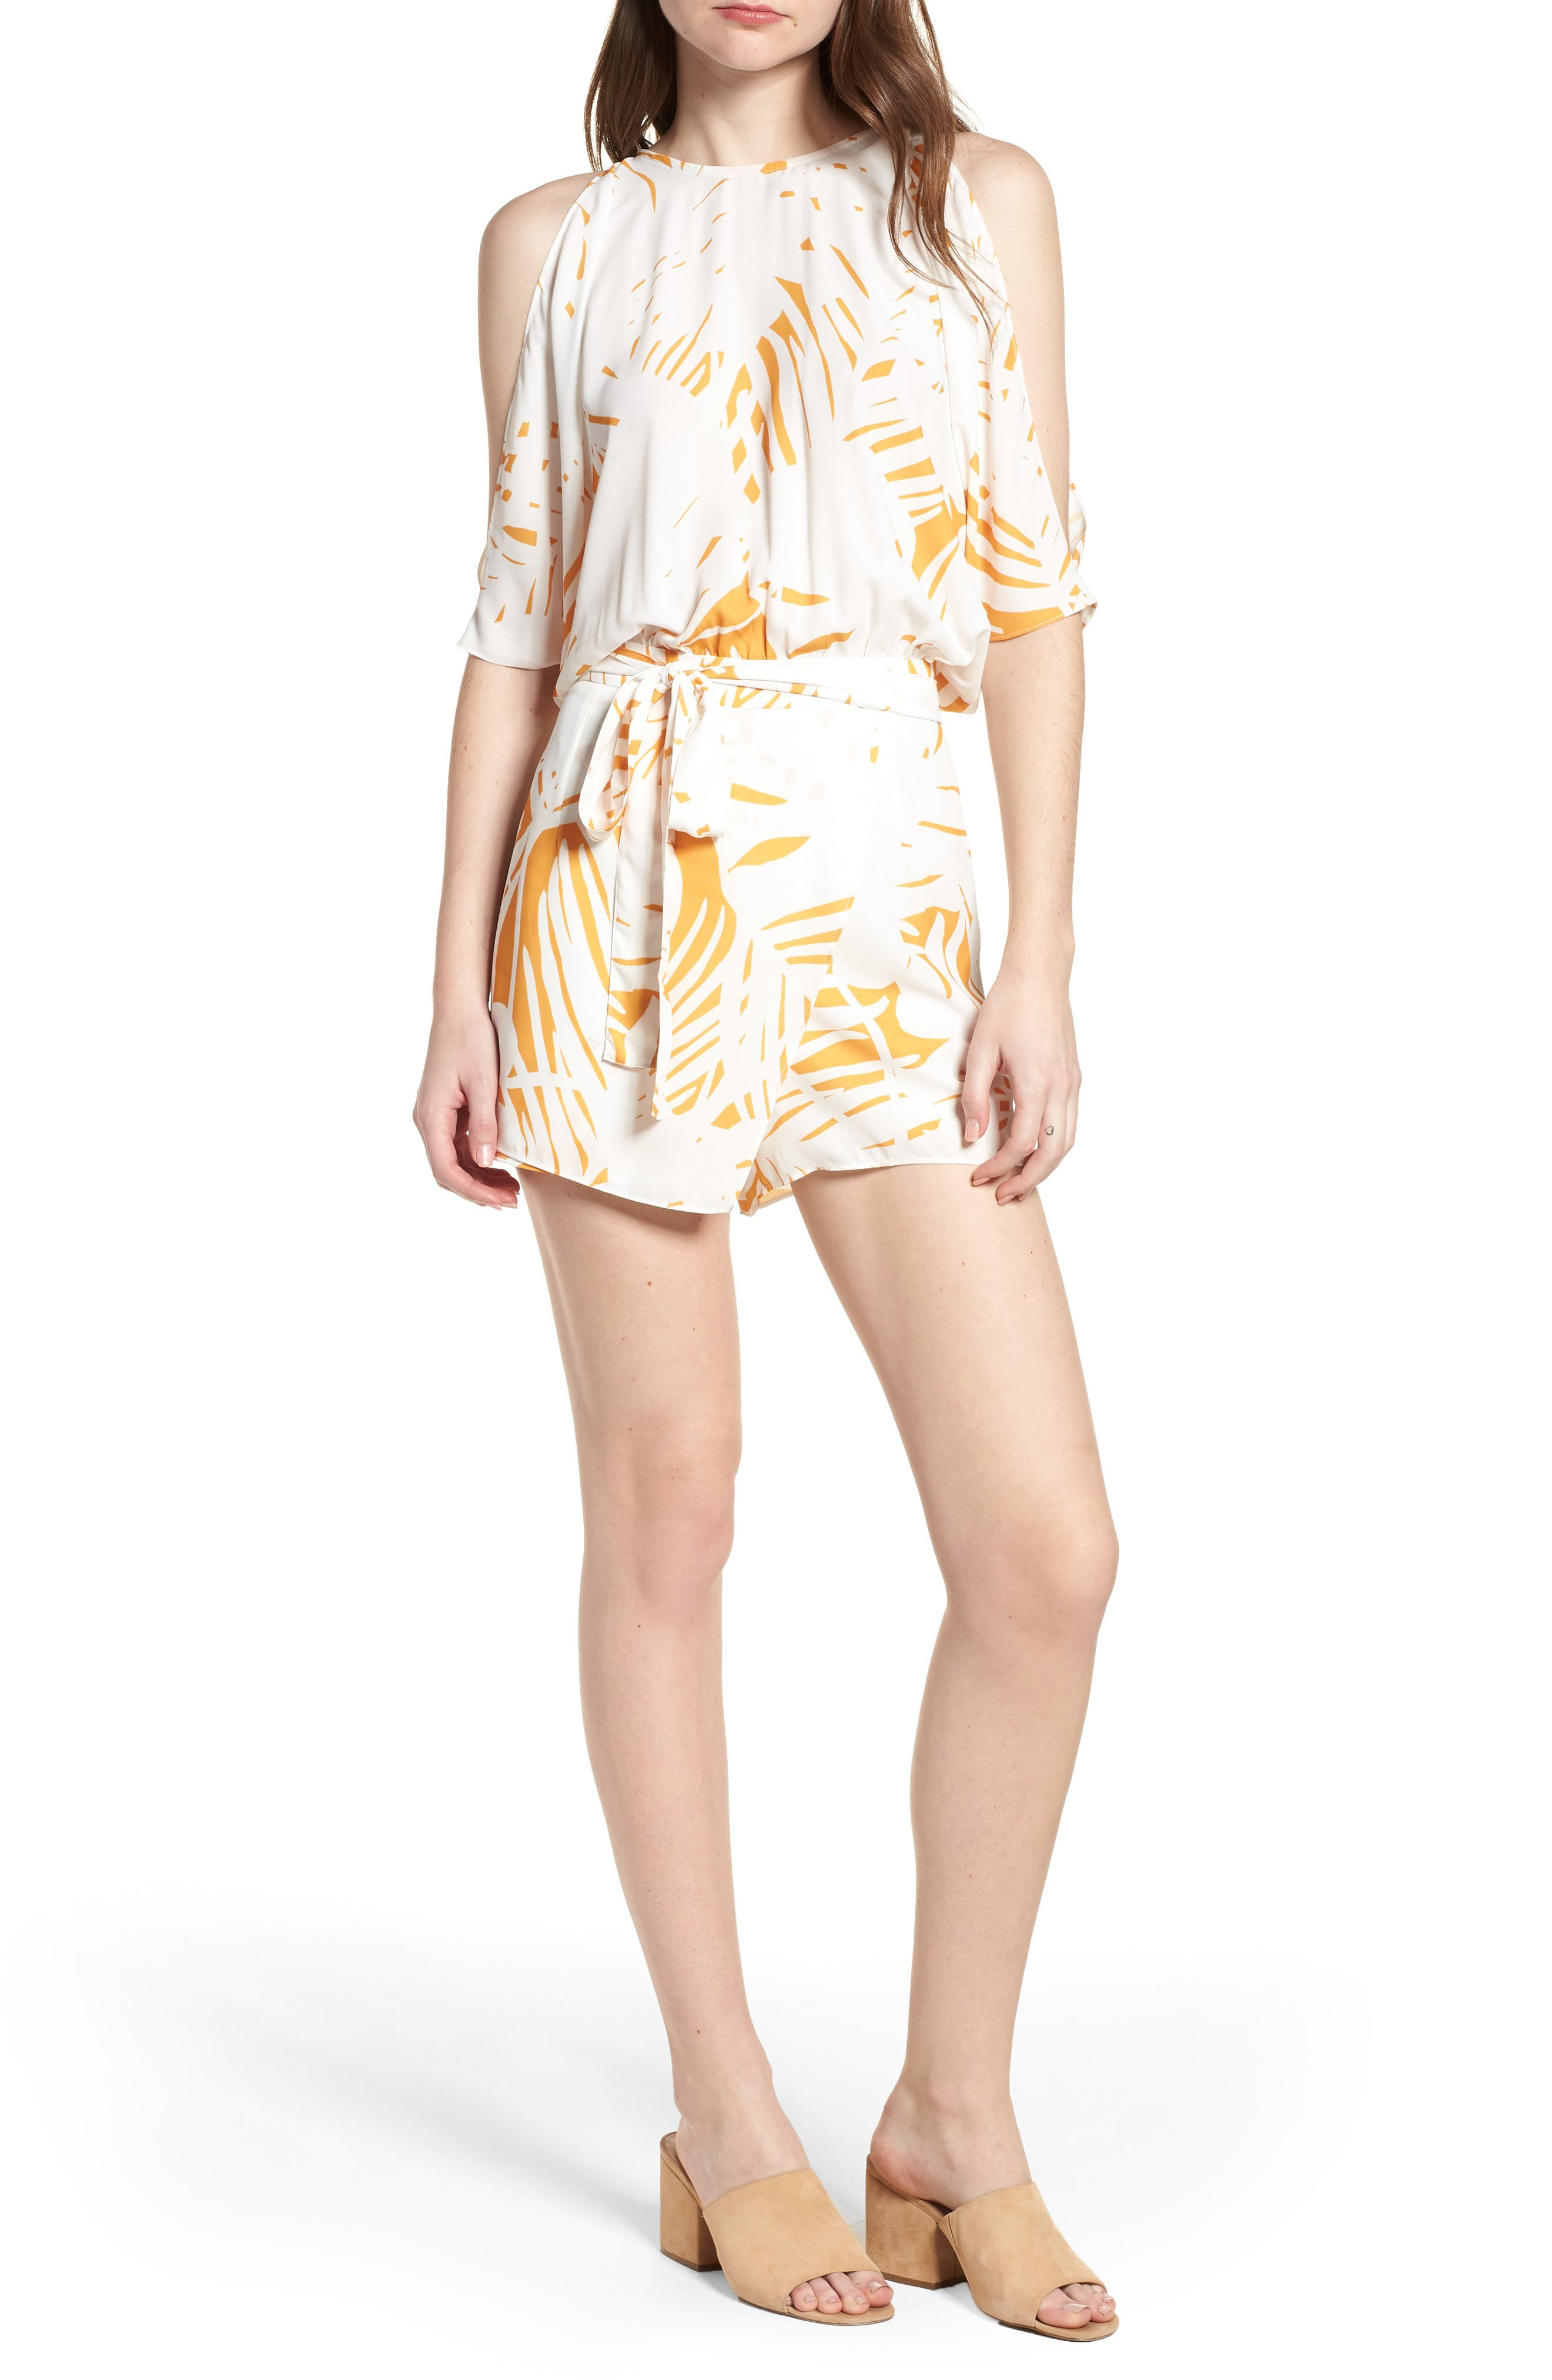 Bishop + Young Jet Set Cold Shoulder Romper,                         Main,                         color, Riviera Print